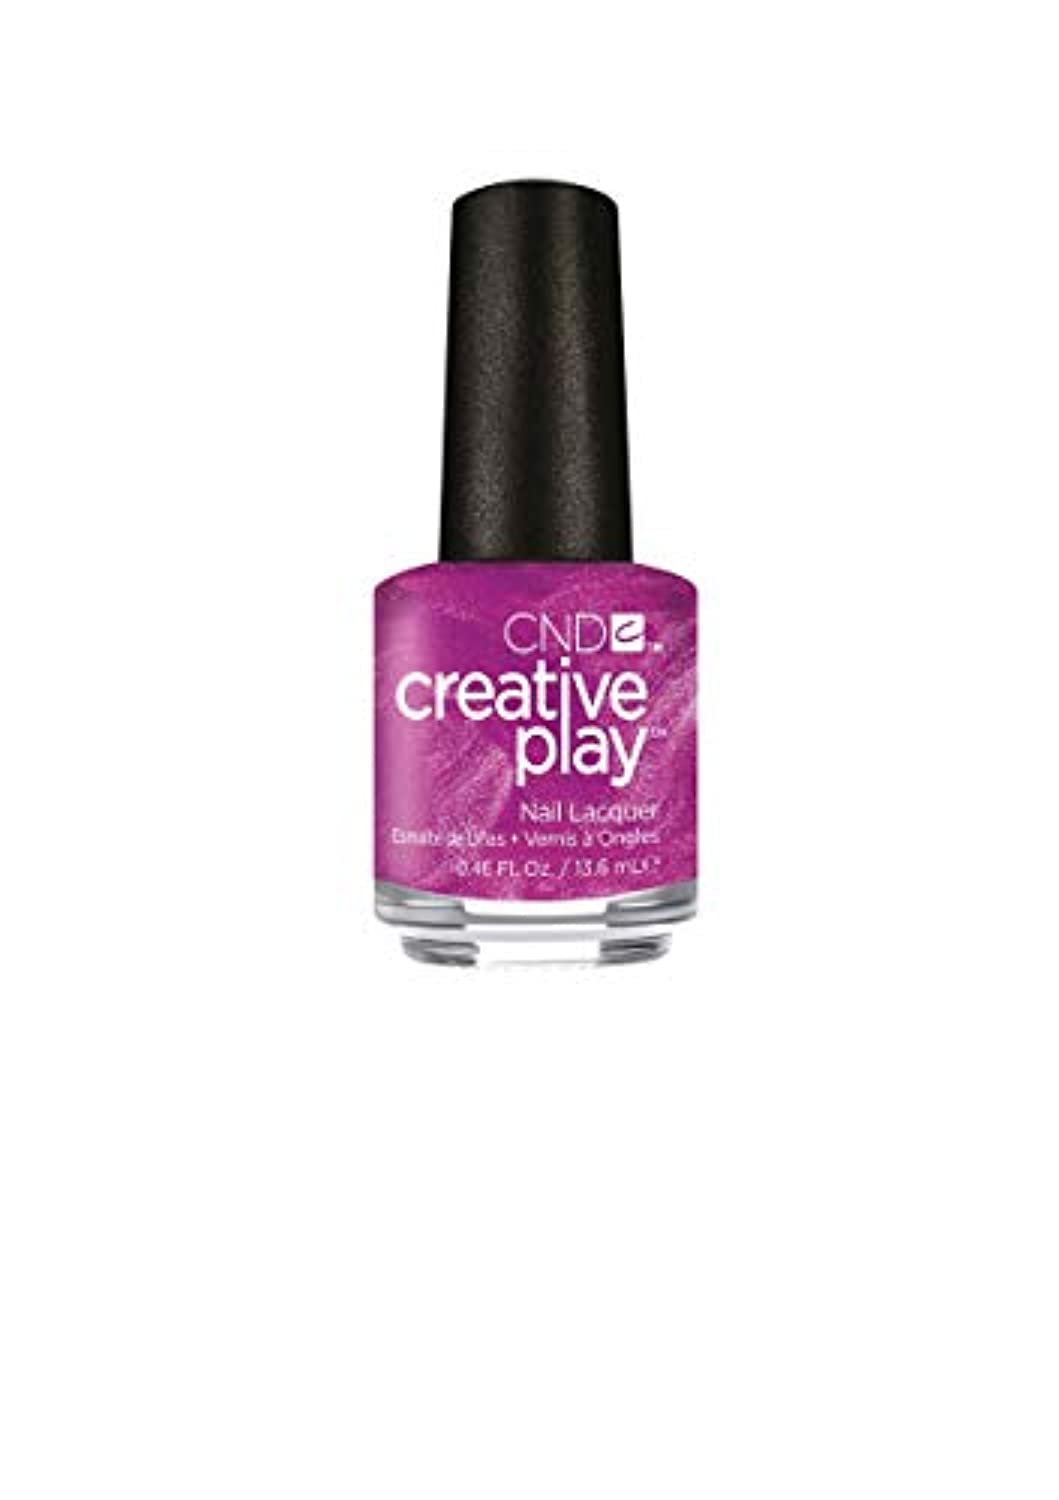 CND Creative Play Lacquer - Crushing It - 0.46oz / 13.6ml